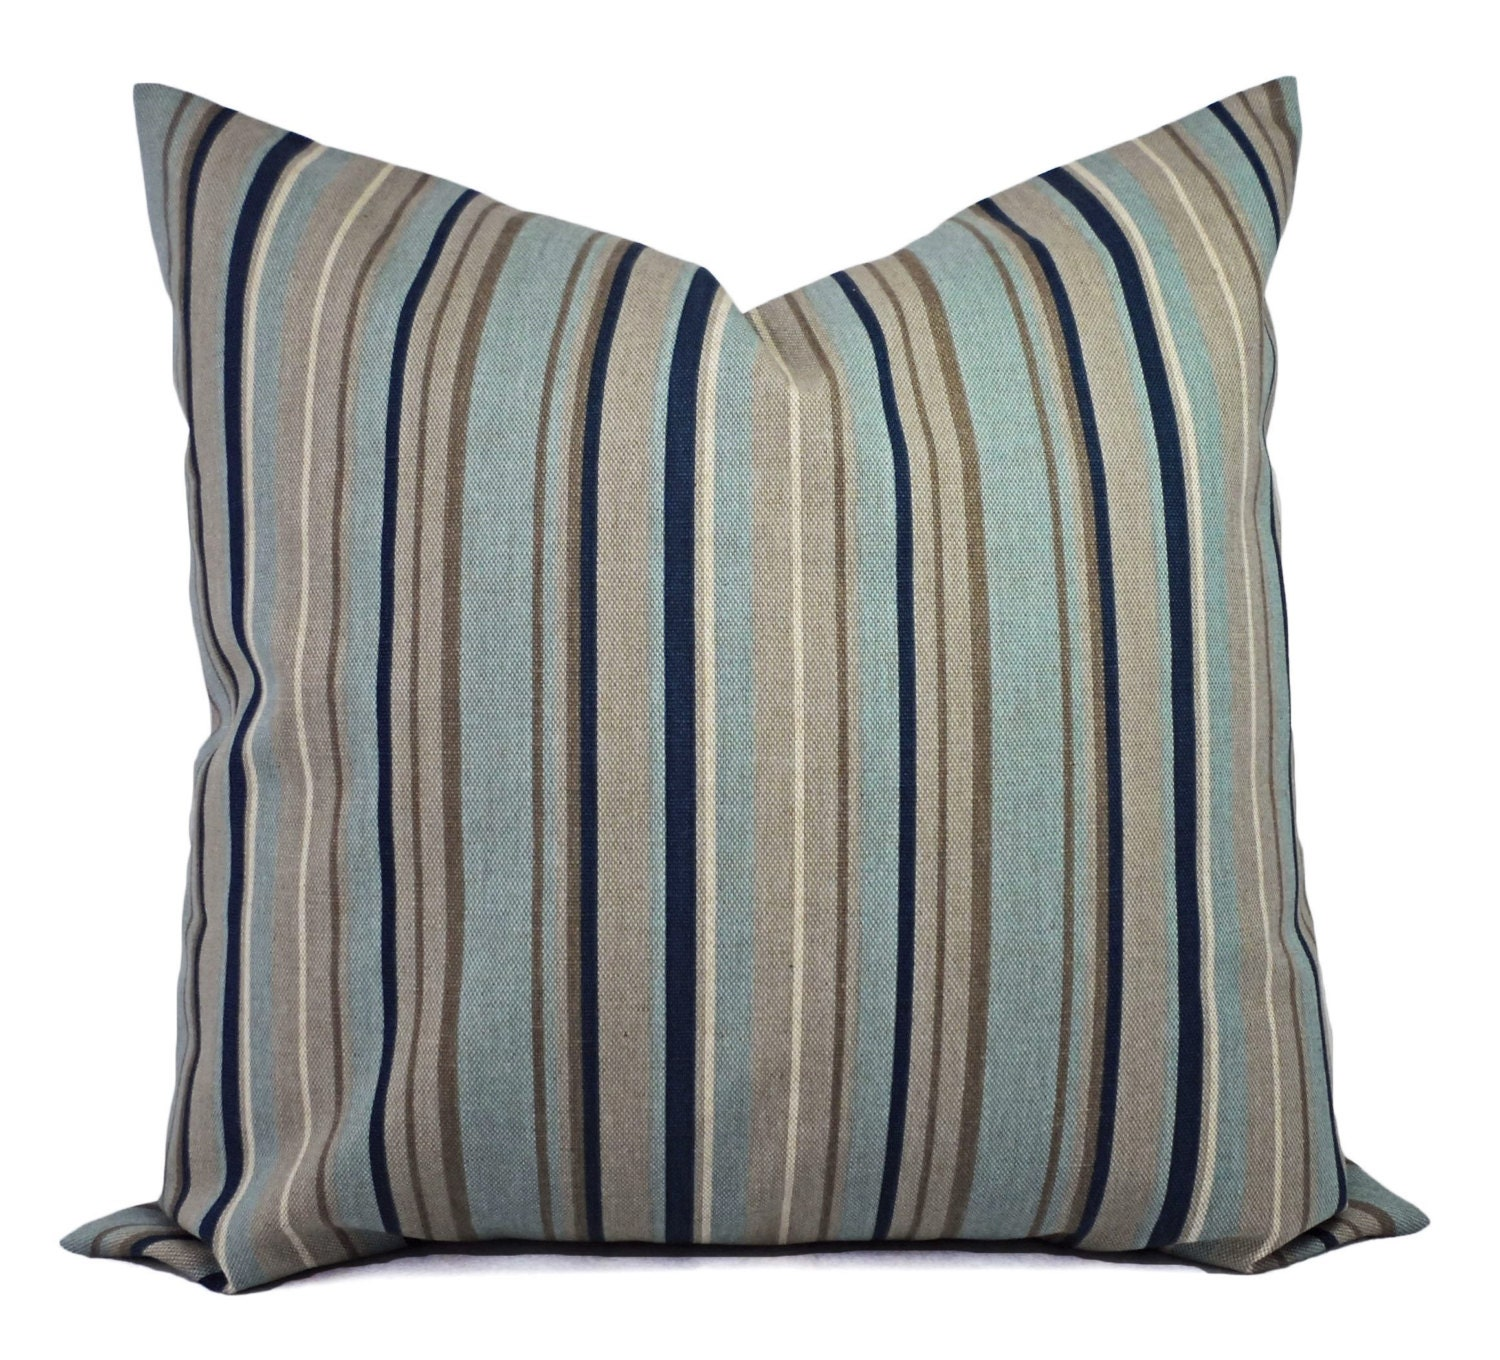 Navy Blue Decorative Pillow Covers : Two Blue Decorative Pillow Covers Navy Blue Striped Pillow